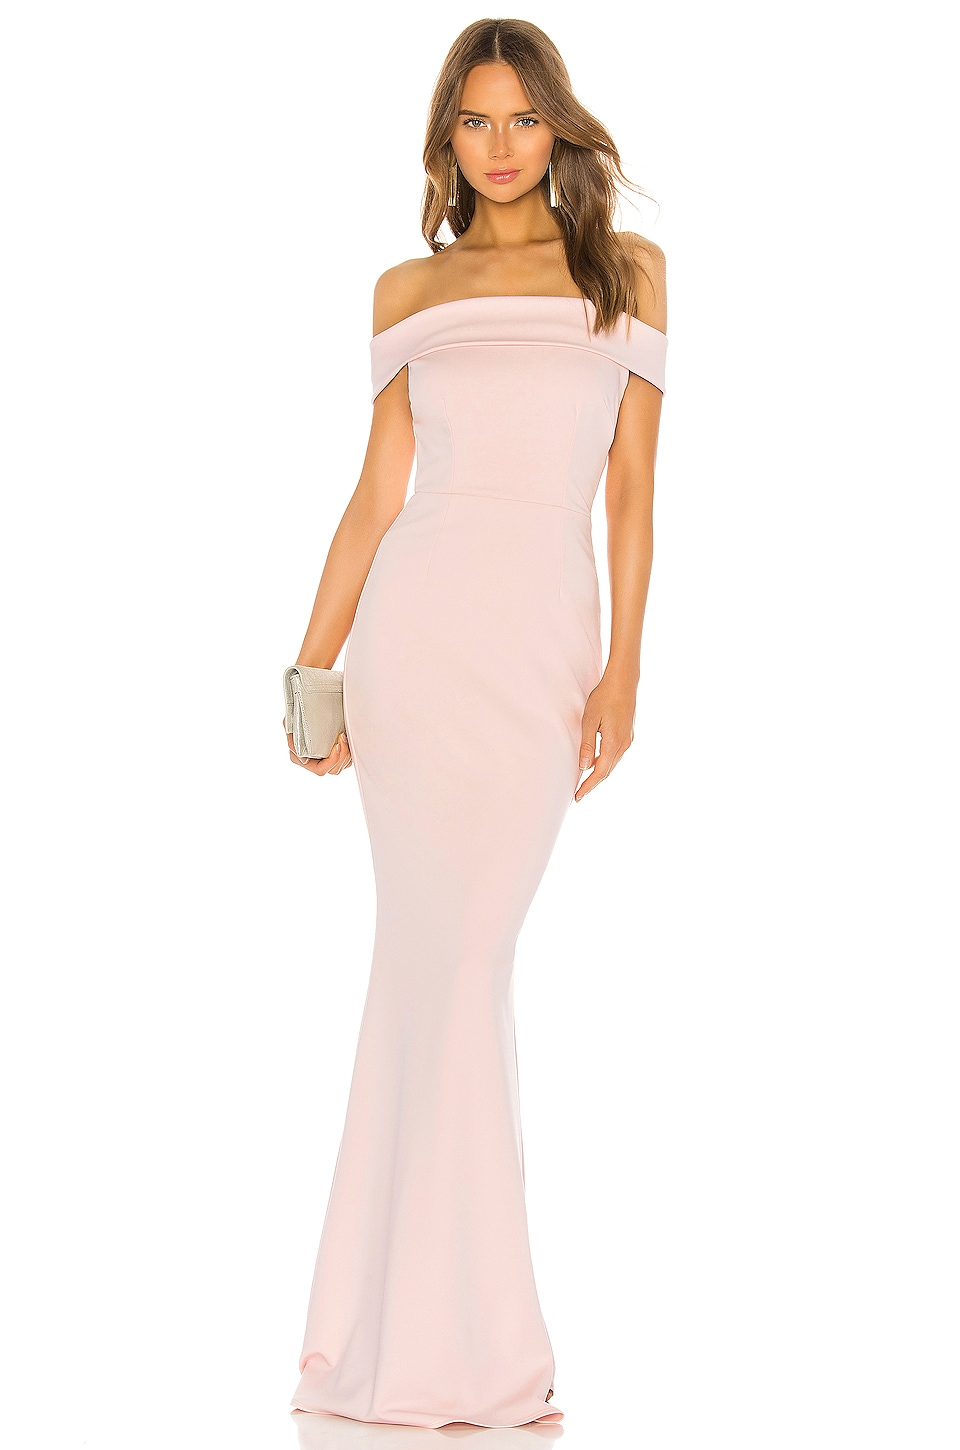 Katie May Legacy Gown in Blush